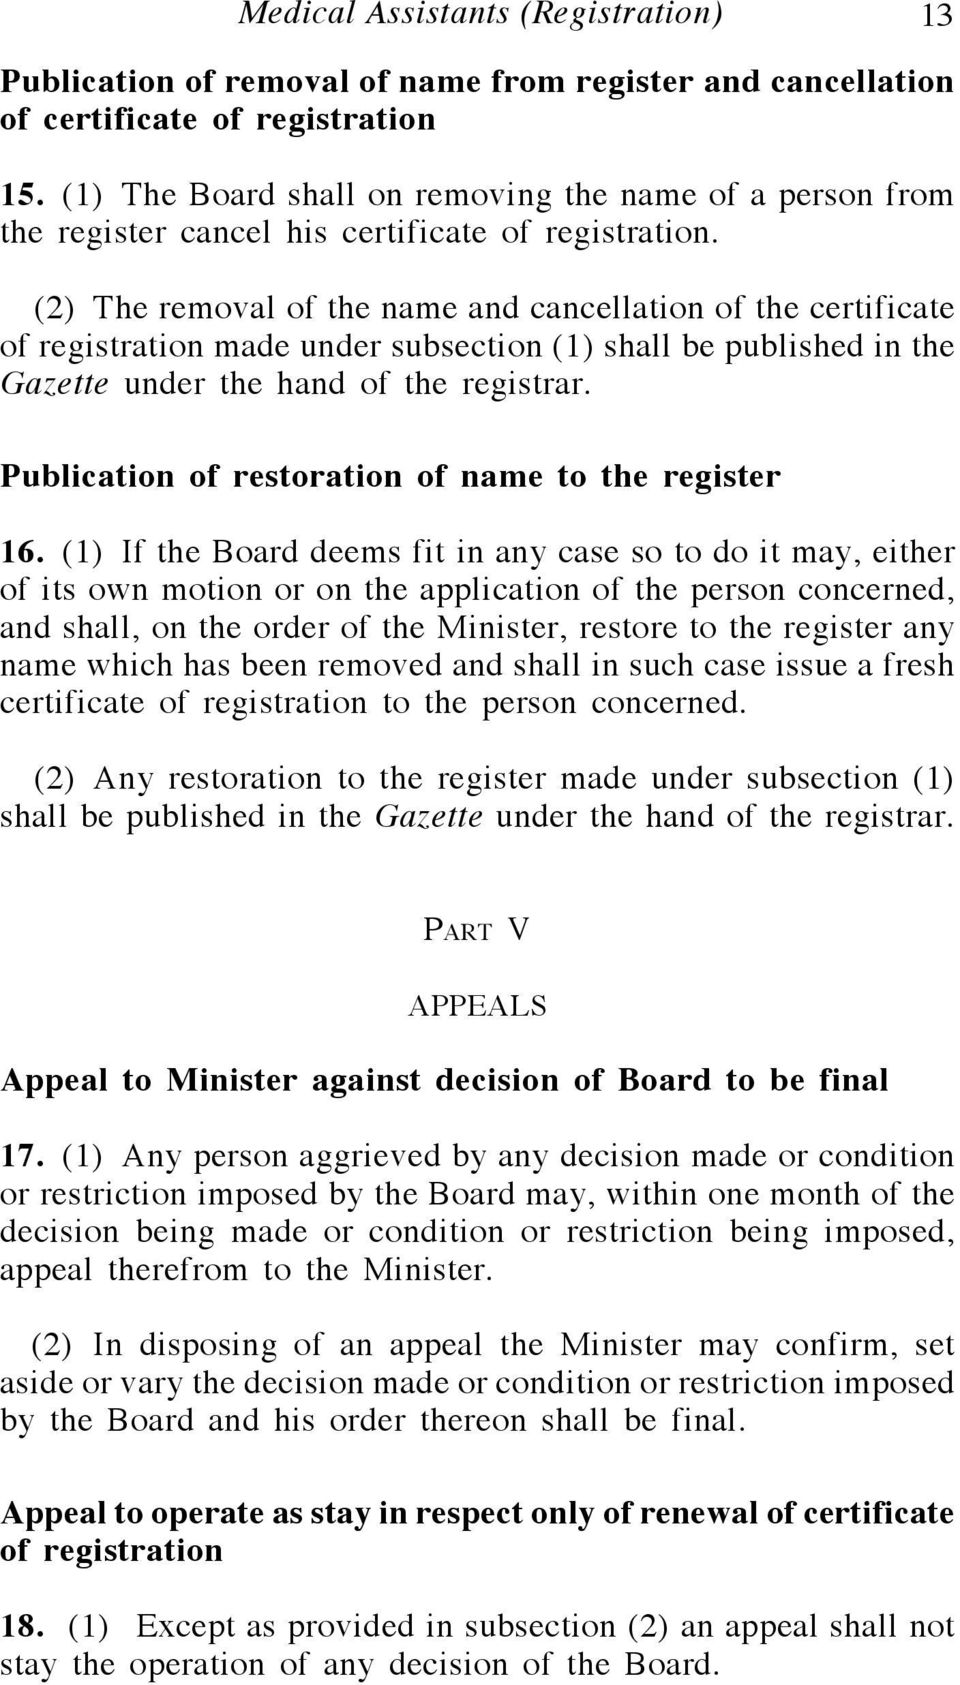 (2) The removal of the name and cancellation of the certificate of registration made under subsection (1) shall be published in the Gazette under the hand of the registrar.